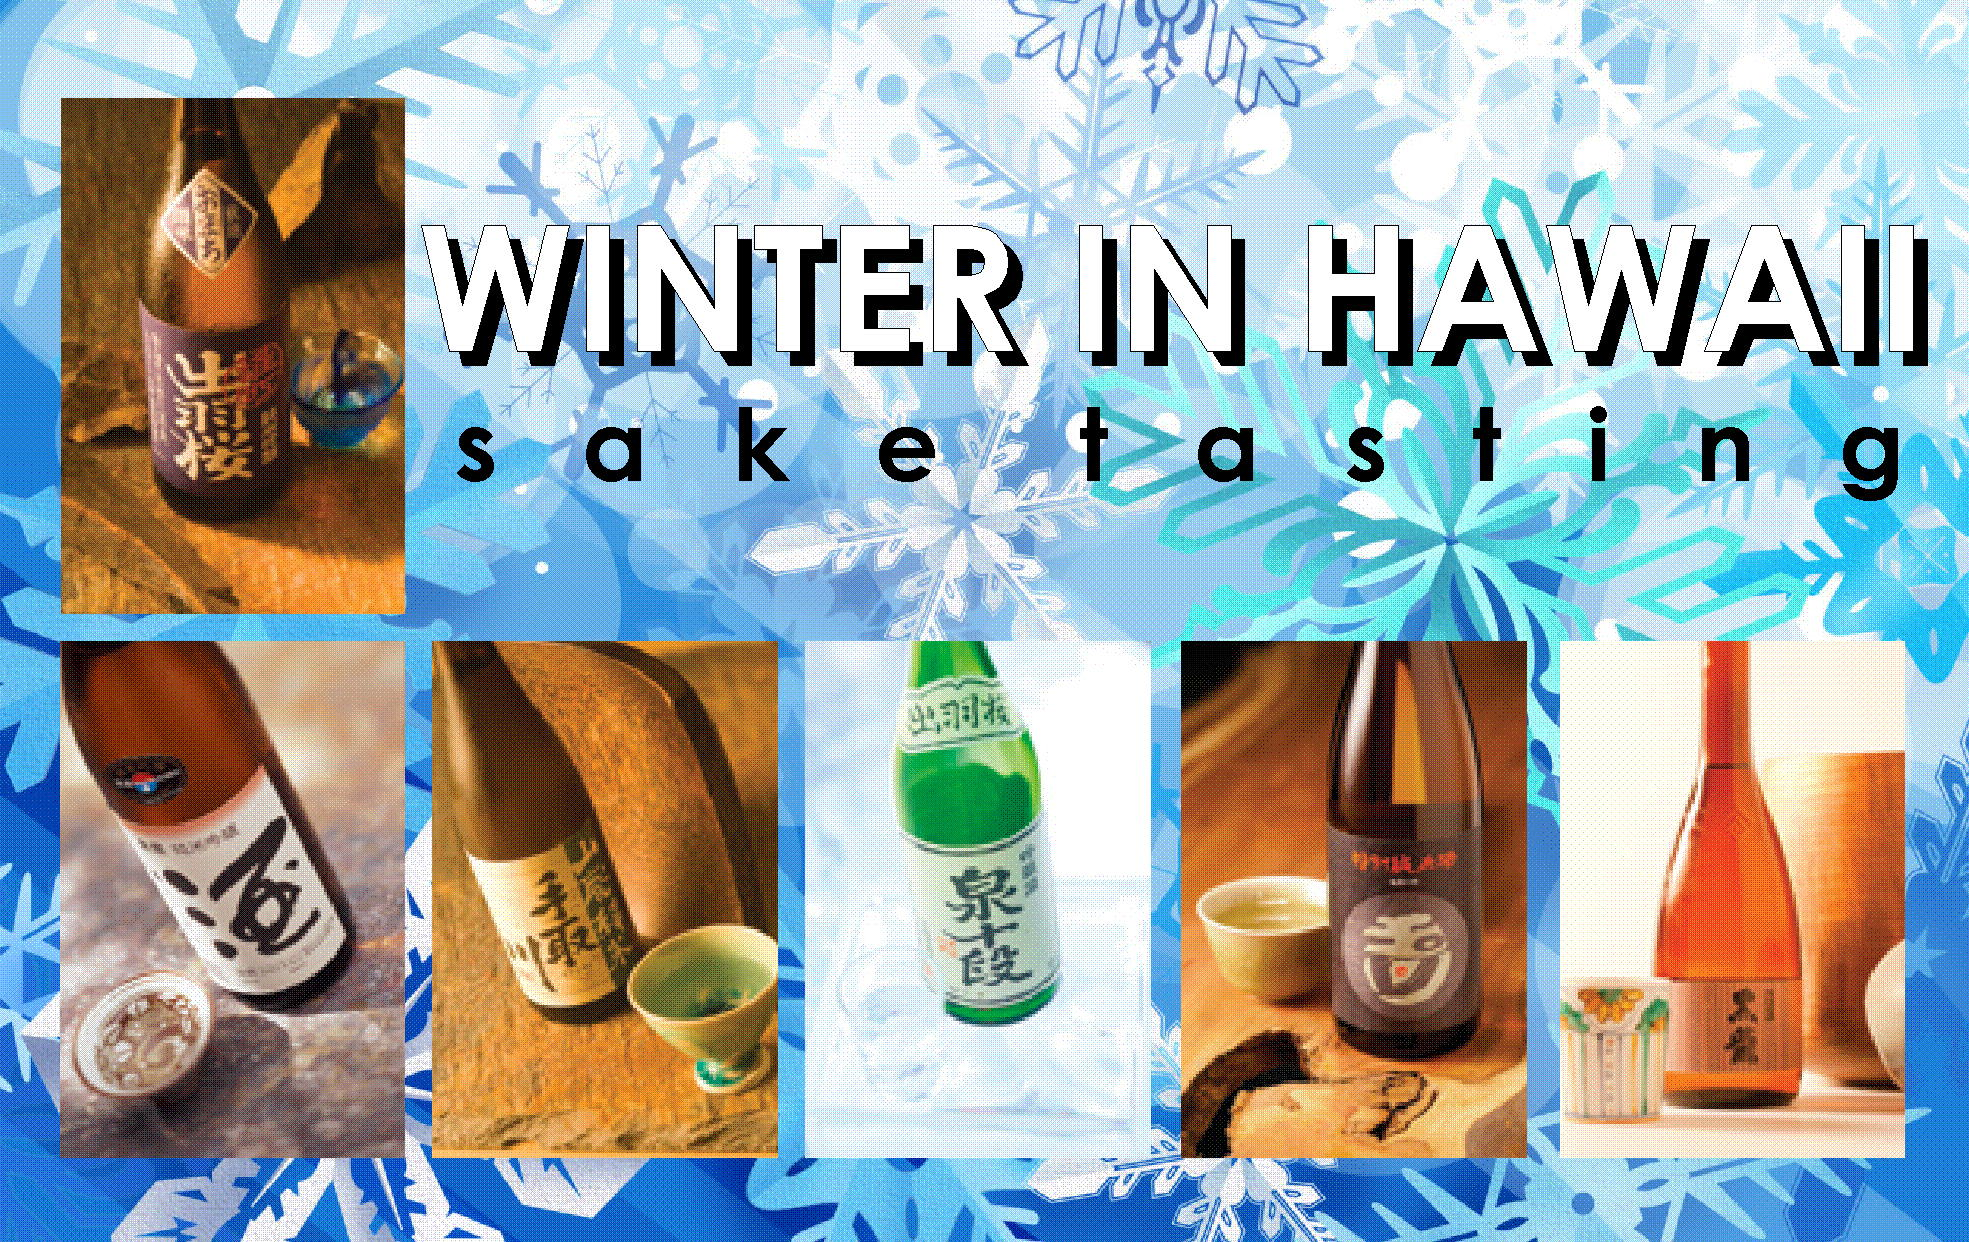 Winter in Hawaii Sake Tasting